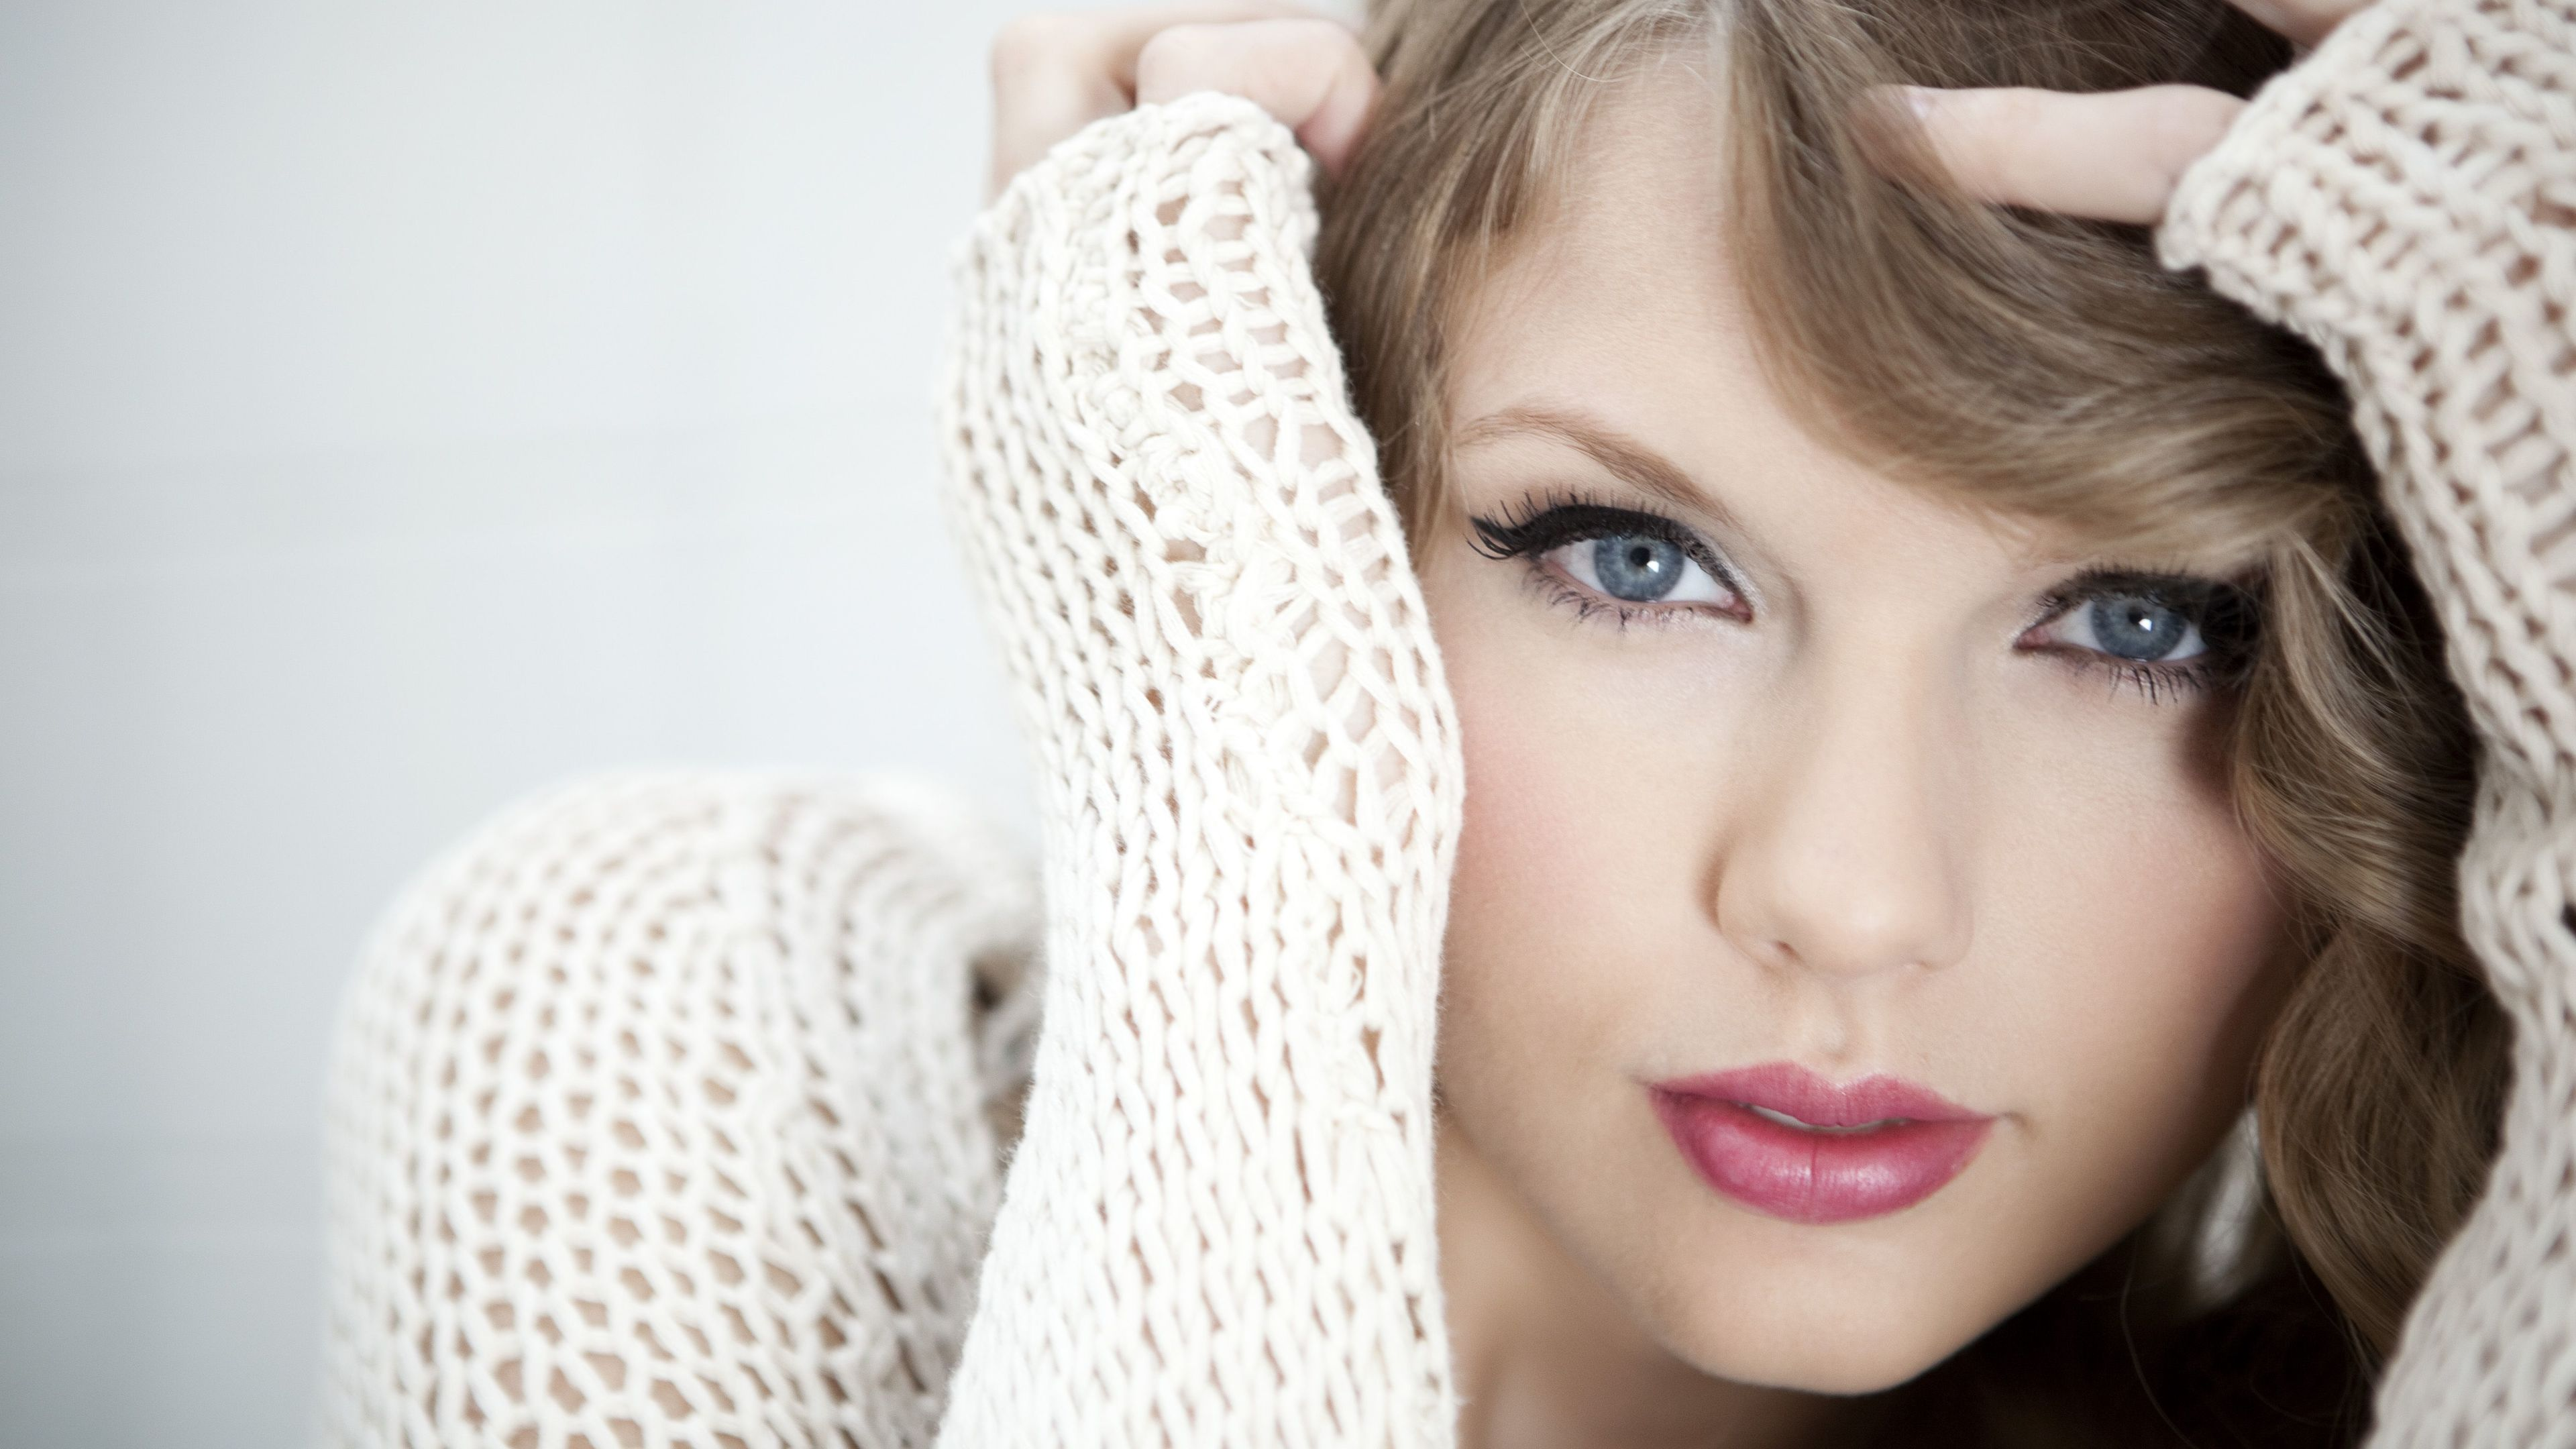 taylor swift blue eyes 5k 1536942739 - Taylor Swift Blue Eyes 5k - taylor swift wallpapers, singer wallpapers, music wallpapers, hd-wallpapers, girls wallpapers, celebrities wallpapers, blue eyes wallpapers, 5k wallpapers, 4k-wallpapers